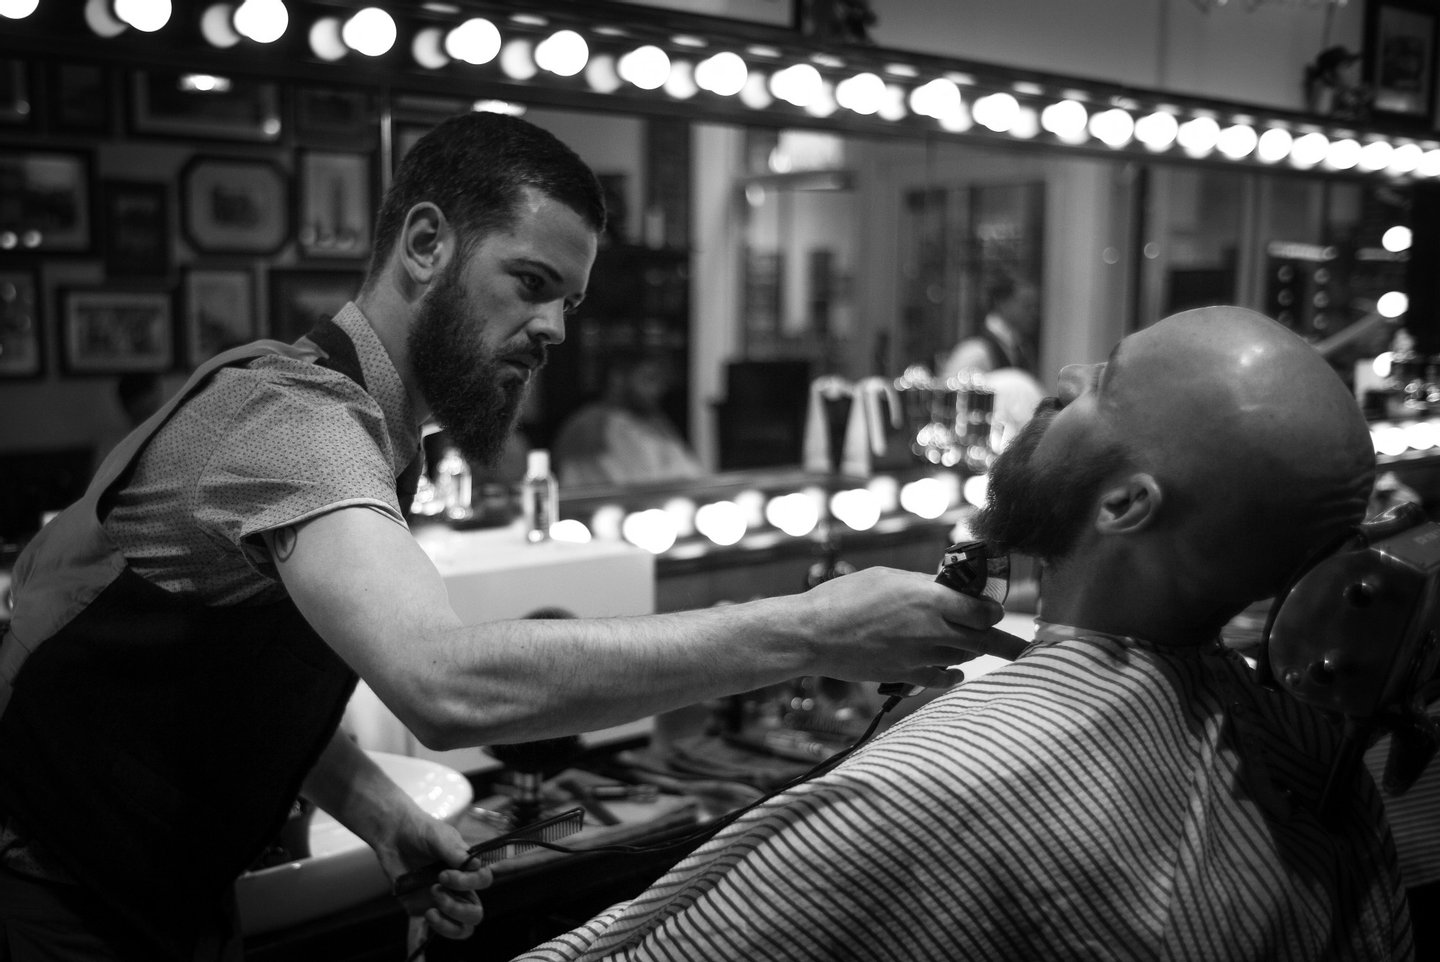 MANCHESTER, ENGLAND - APRIL 29: (EDITORS NOTE: This image has been converted to black and white. Colour version available upon request.) Barber Ricky Trim wet shaves a customer in Manchester's Barber Barber, a 'gentleman's saloon' style male barber shop, on April 29, 2015 in Manchester, England. According to owner Johnny the Baba, Barber Barber is the UK's finest barber shop. The shop for 'gentleman and scoundrels' takes a traditional approach to male grooming, and offers services such as wet shaving, beard scultping and highly skilled hair styling. The shop also offers complimentary drinks and cigars to it's customers and operates a 'gentlemen only' door policy. (Photo by Christopher Furlong/Getty Images)